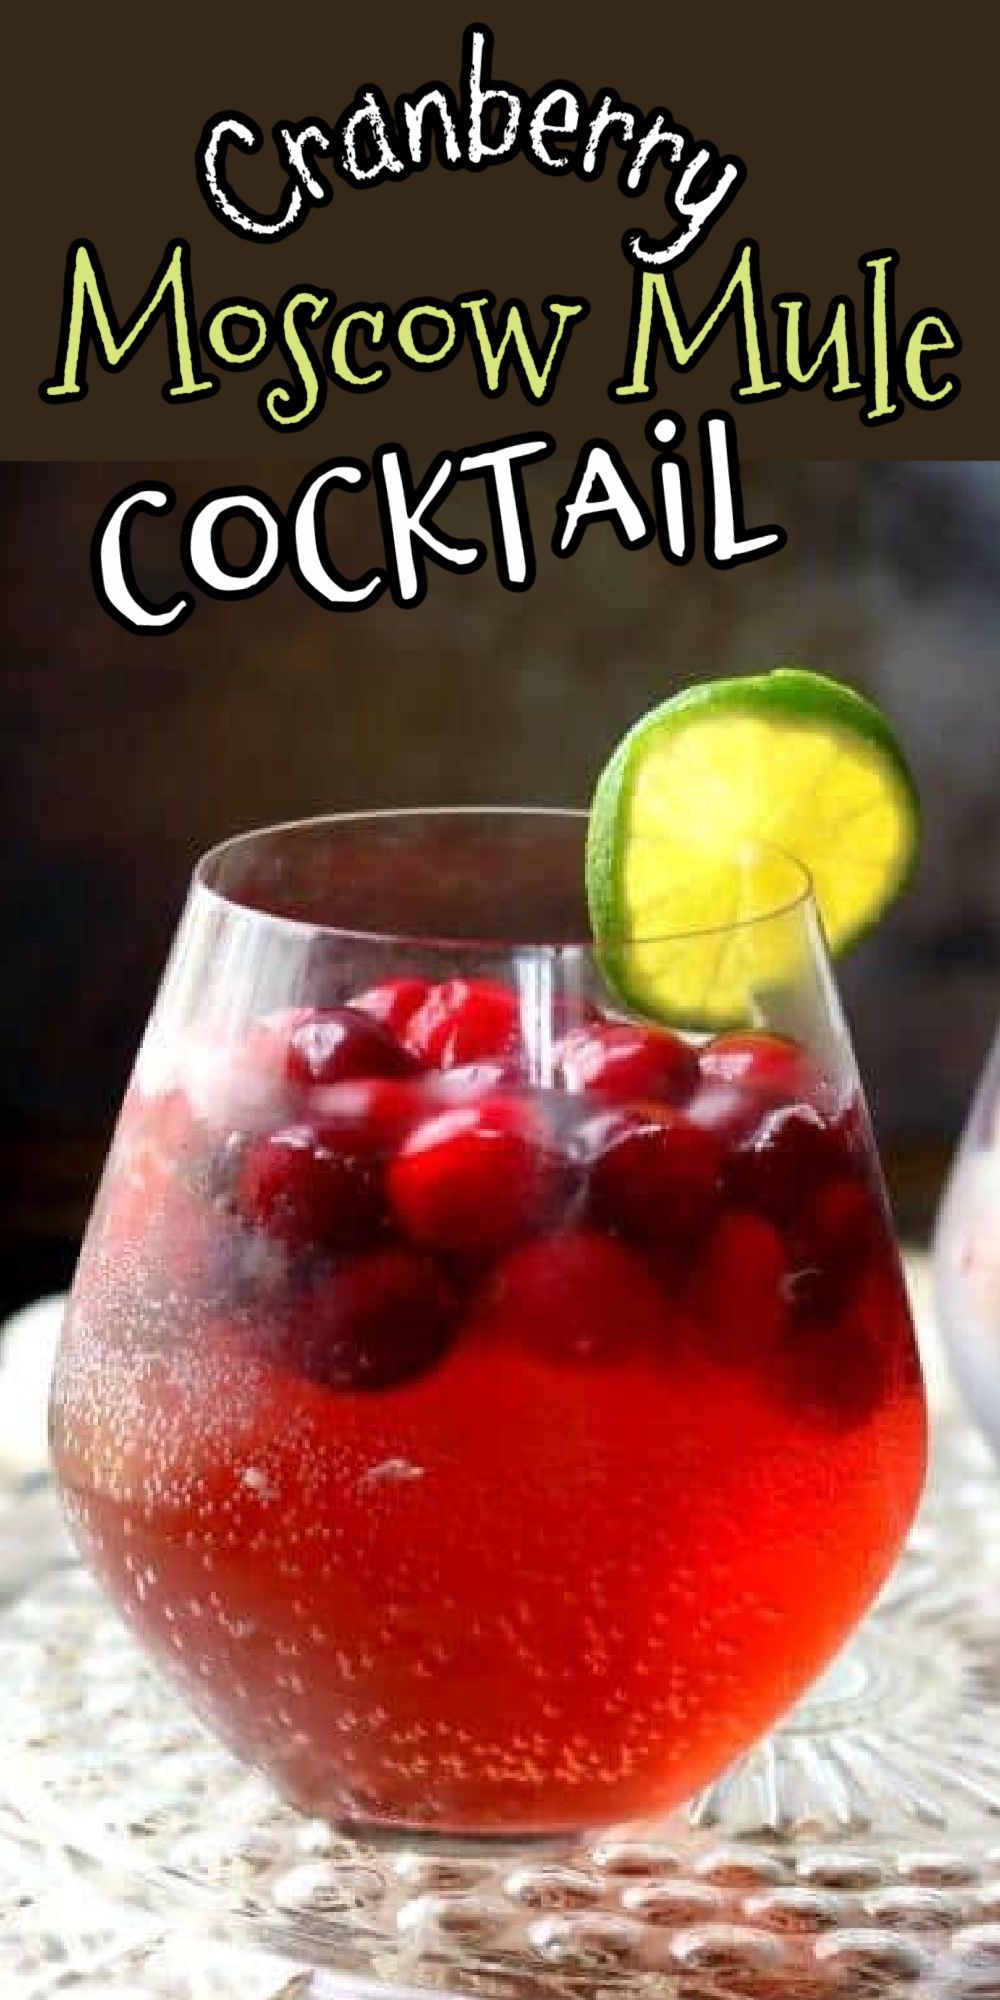 Cranberry Moscow Mule Delicious Holiday Drink Recipe In 2020 Cranberry Moscow Mule Holiday Drinks Cranberry